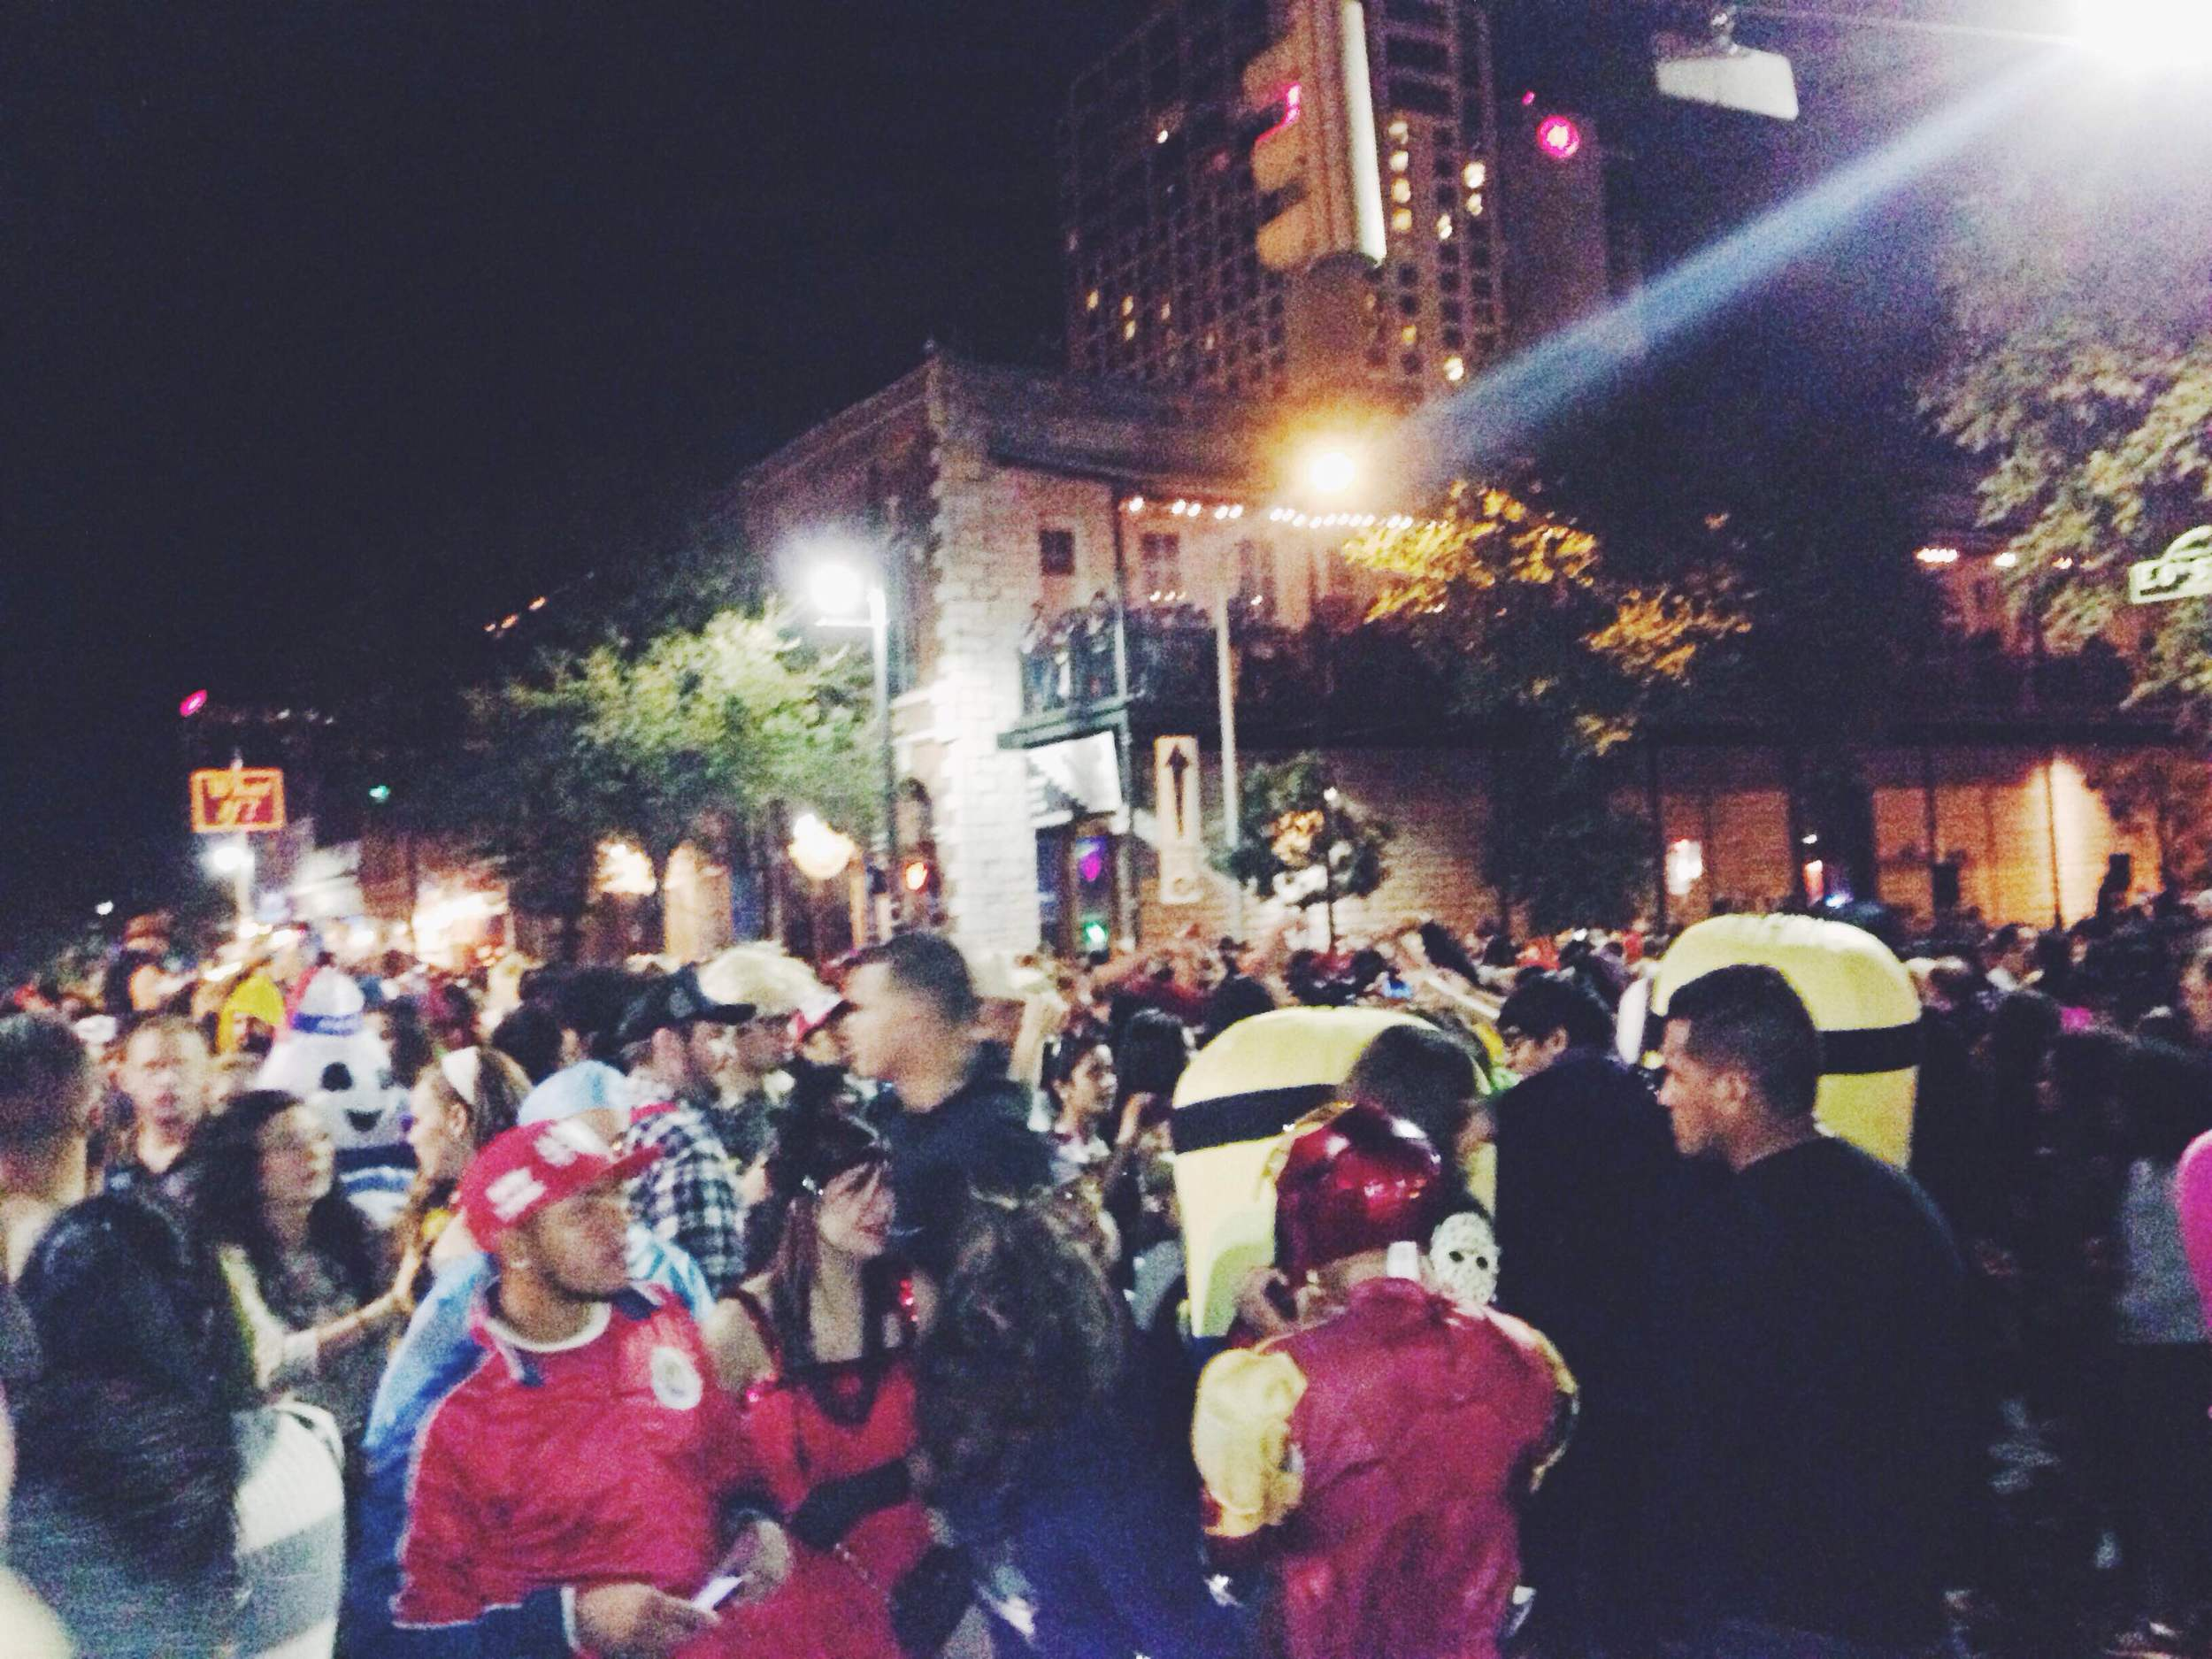 6th street. Halloween. Craziness.